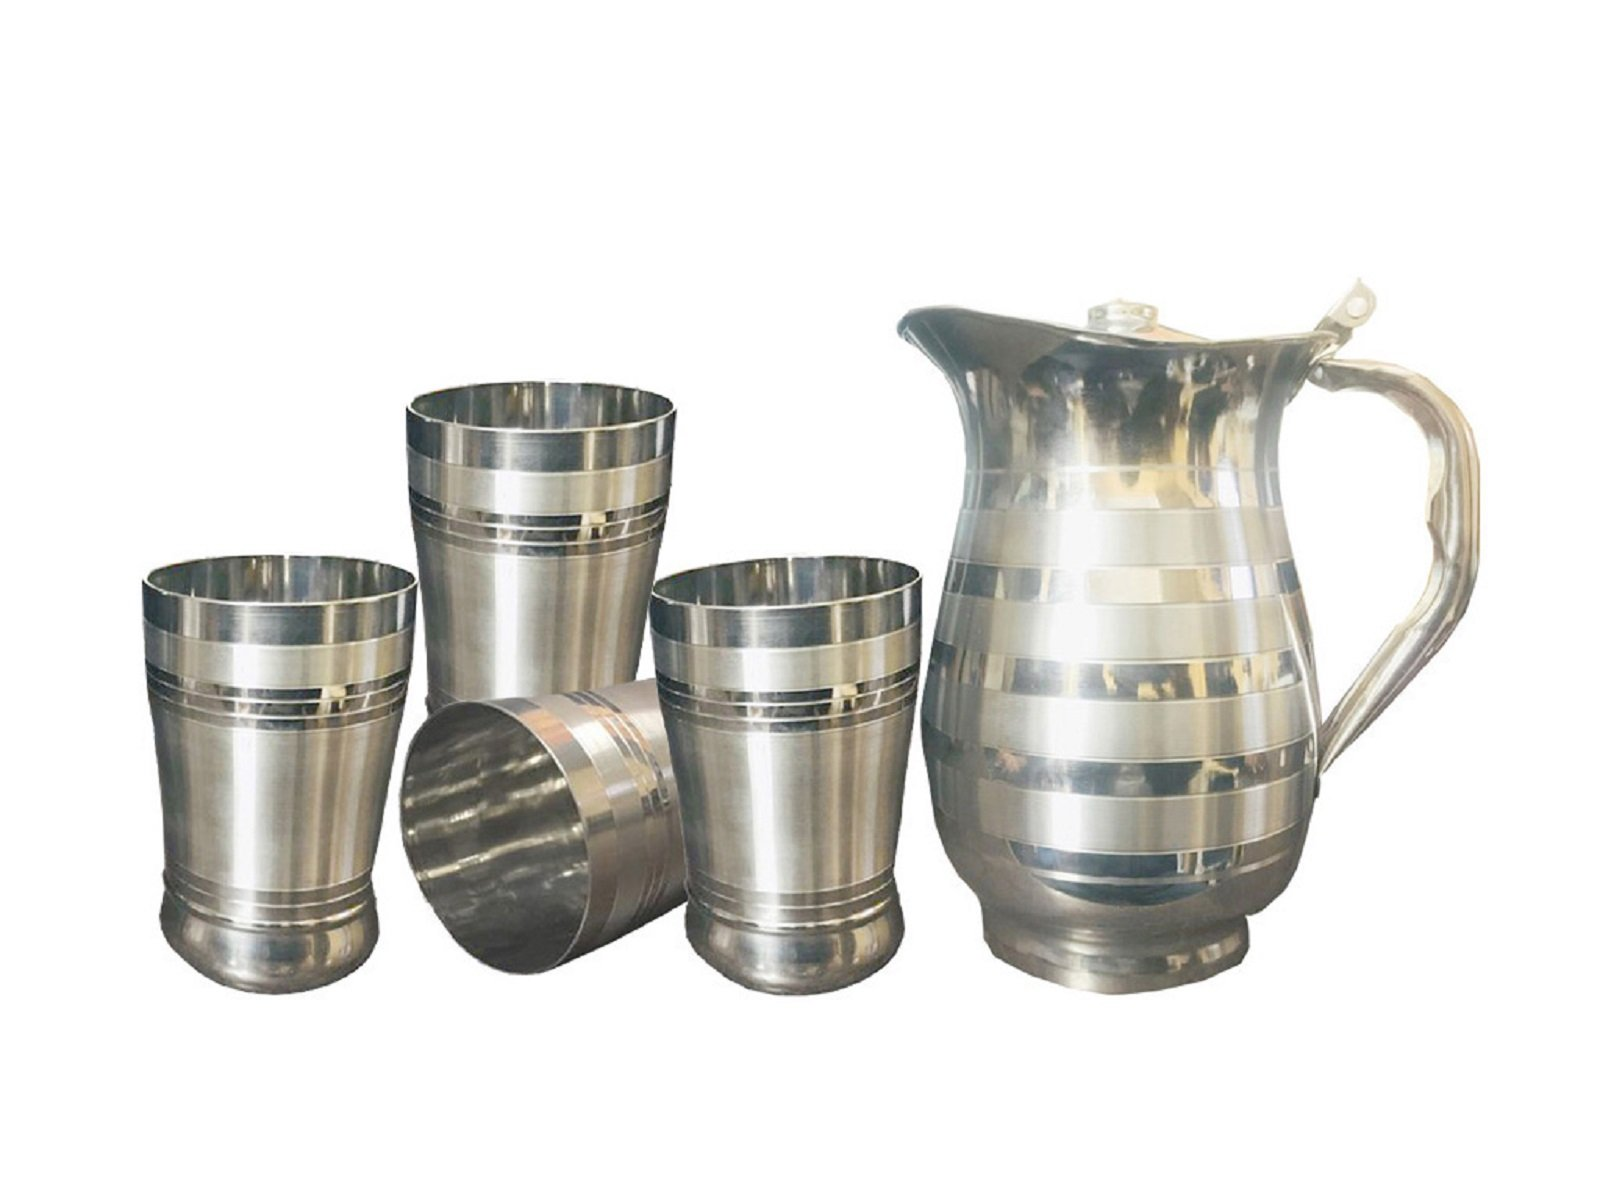 Kuber Industries Pure Stainless Steel Jug Pitcher 1500 ML for Storage & Serving Water with 4 Steel Glass (Jug24) by Kuber Industries